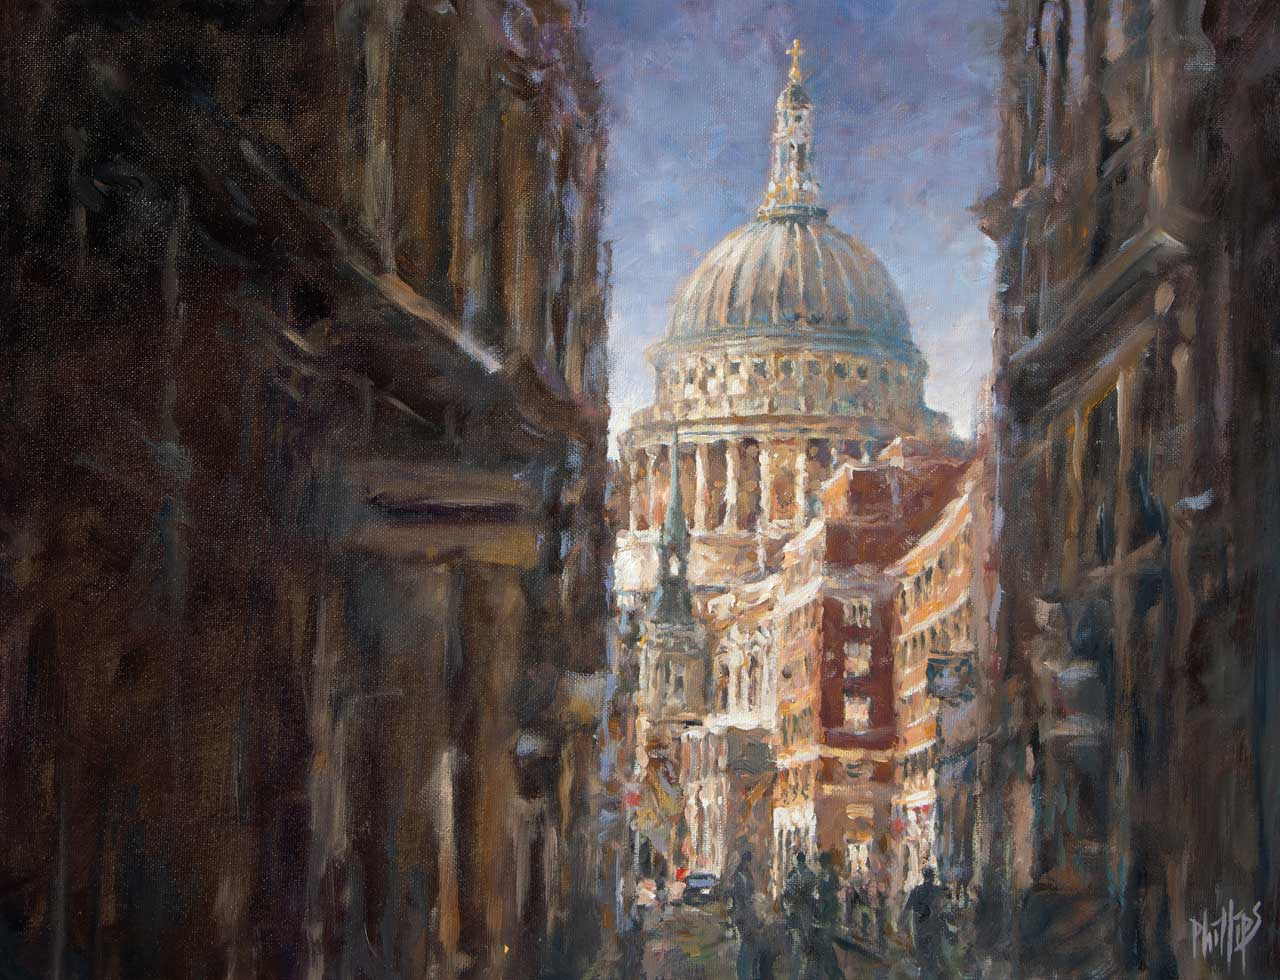 painting of St. Paul's Cathederal, London